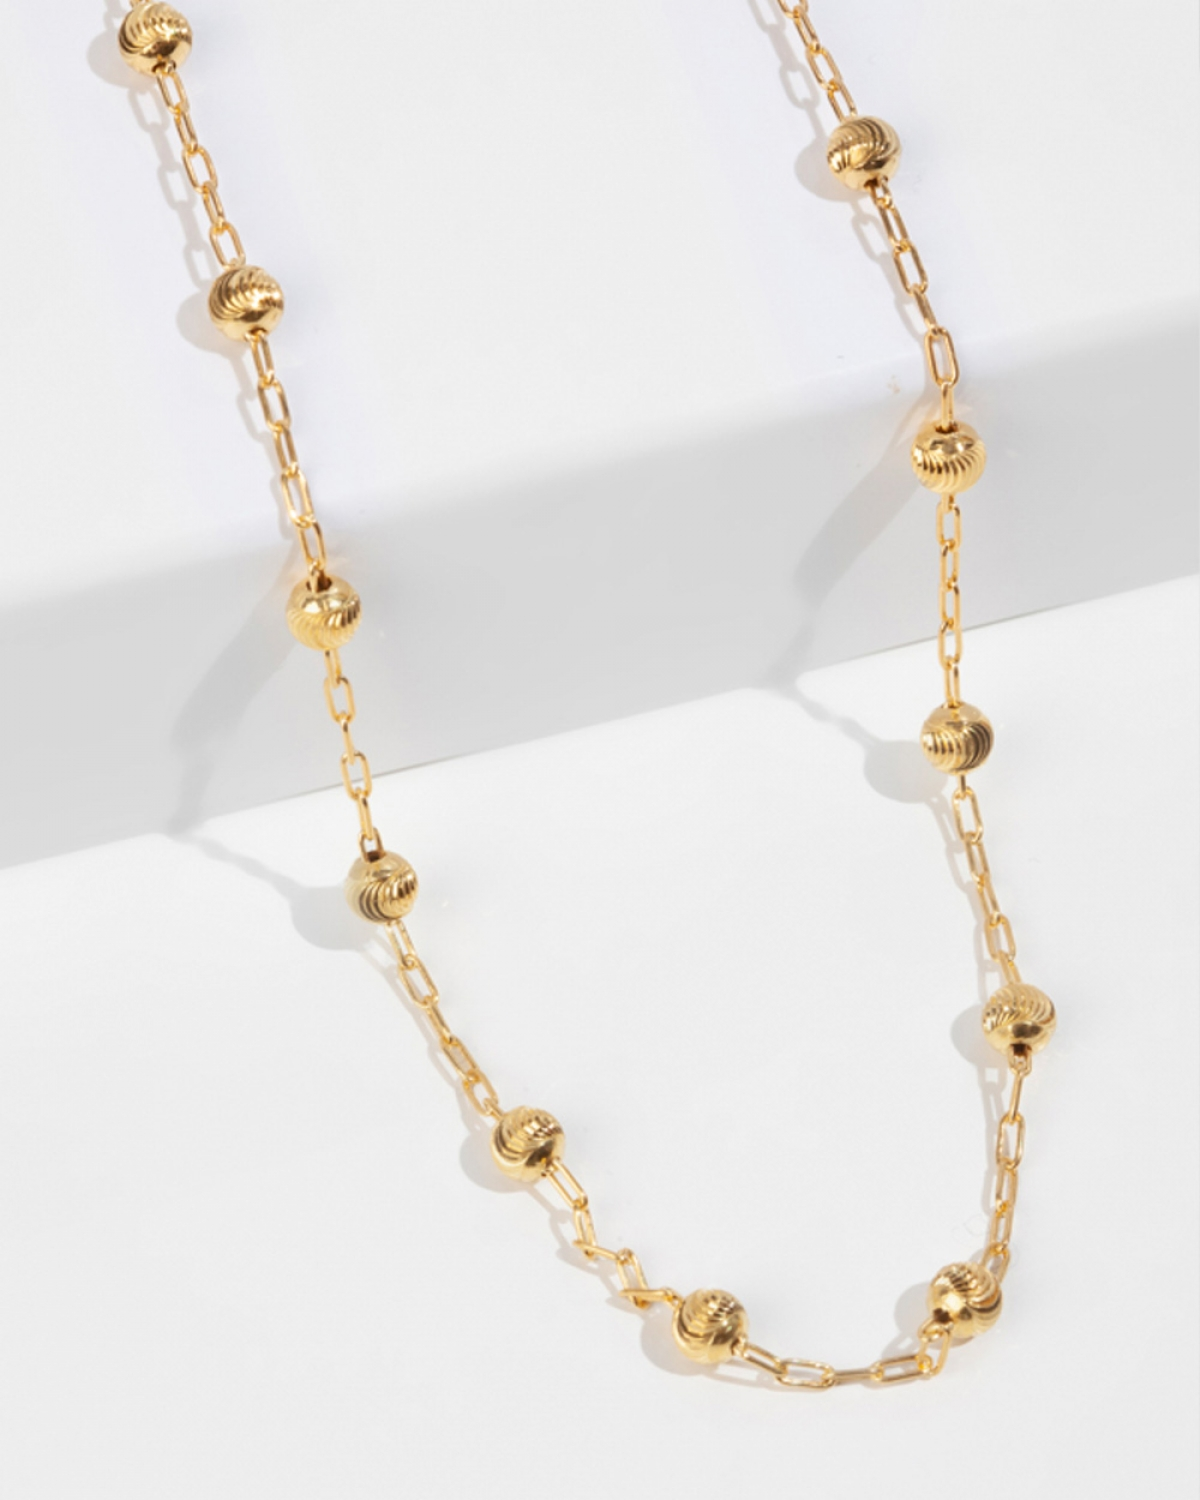 NOOR Gold Chain